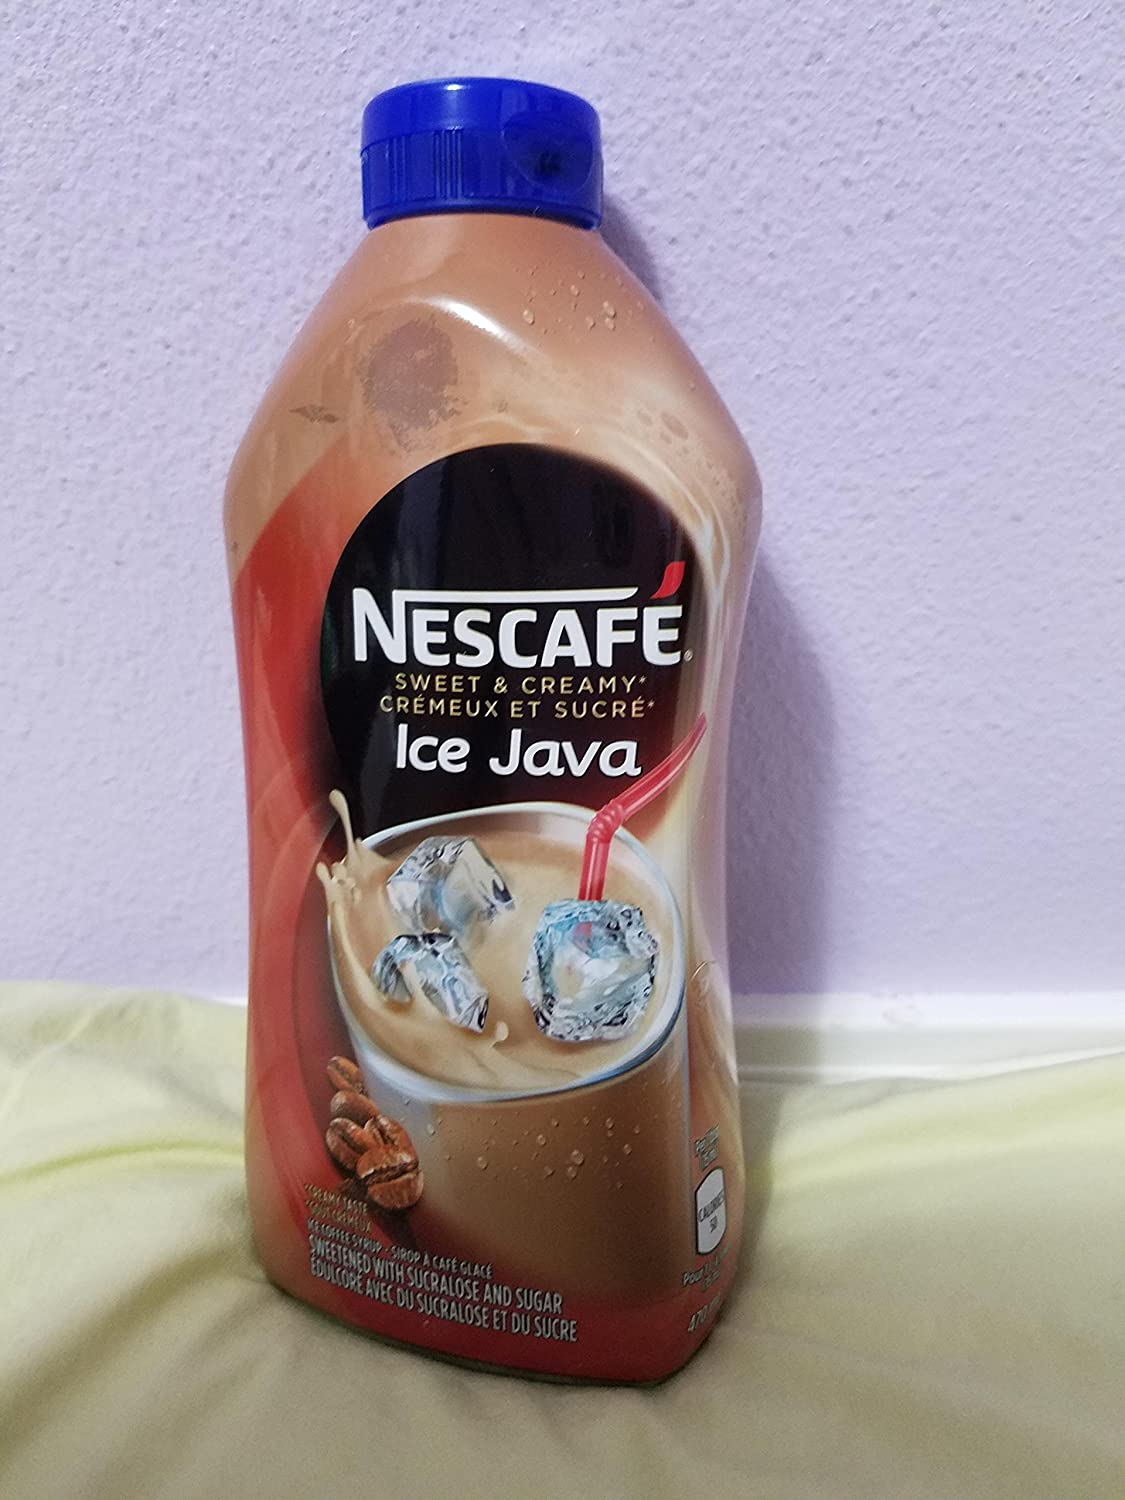 Ice Java by Nescafe, sweet and creamy